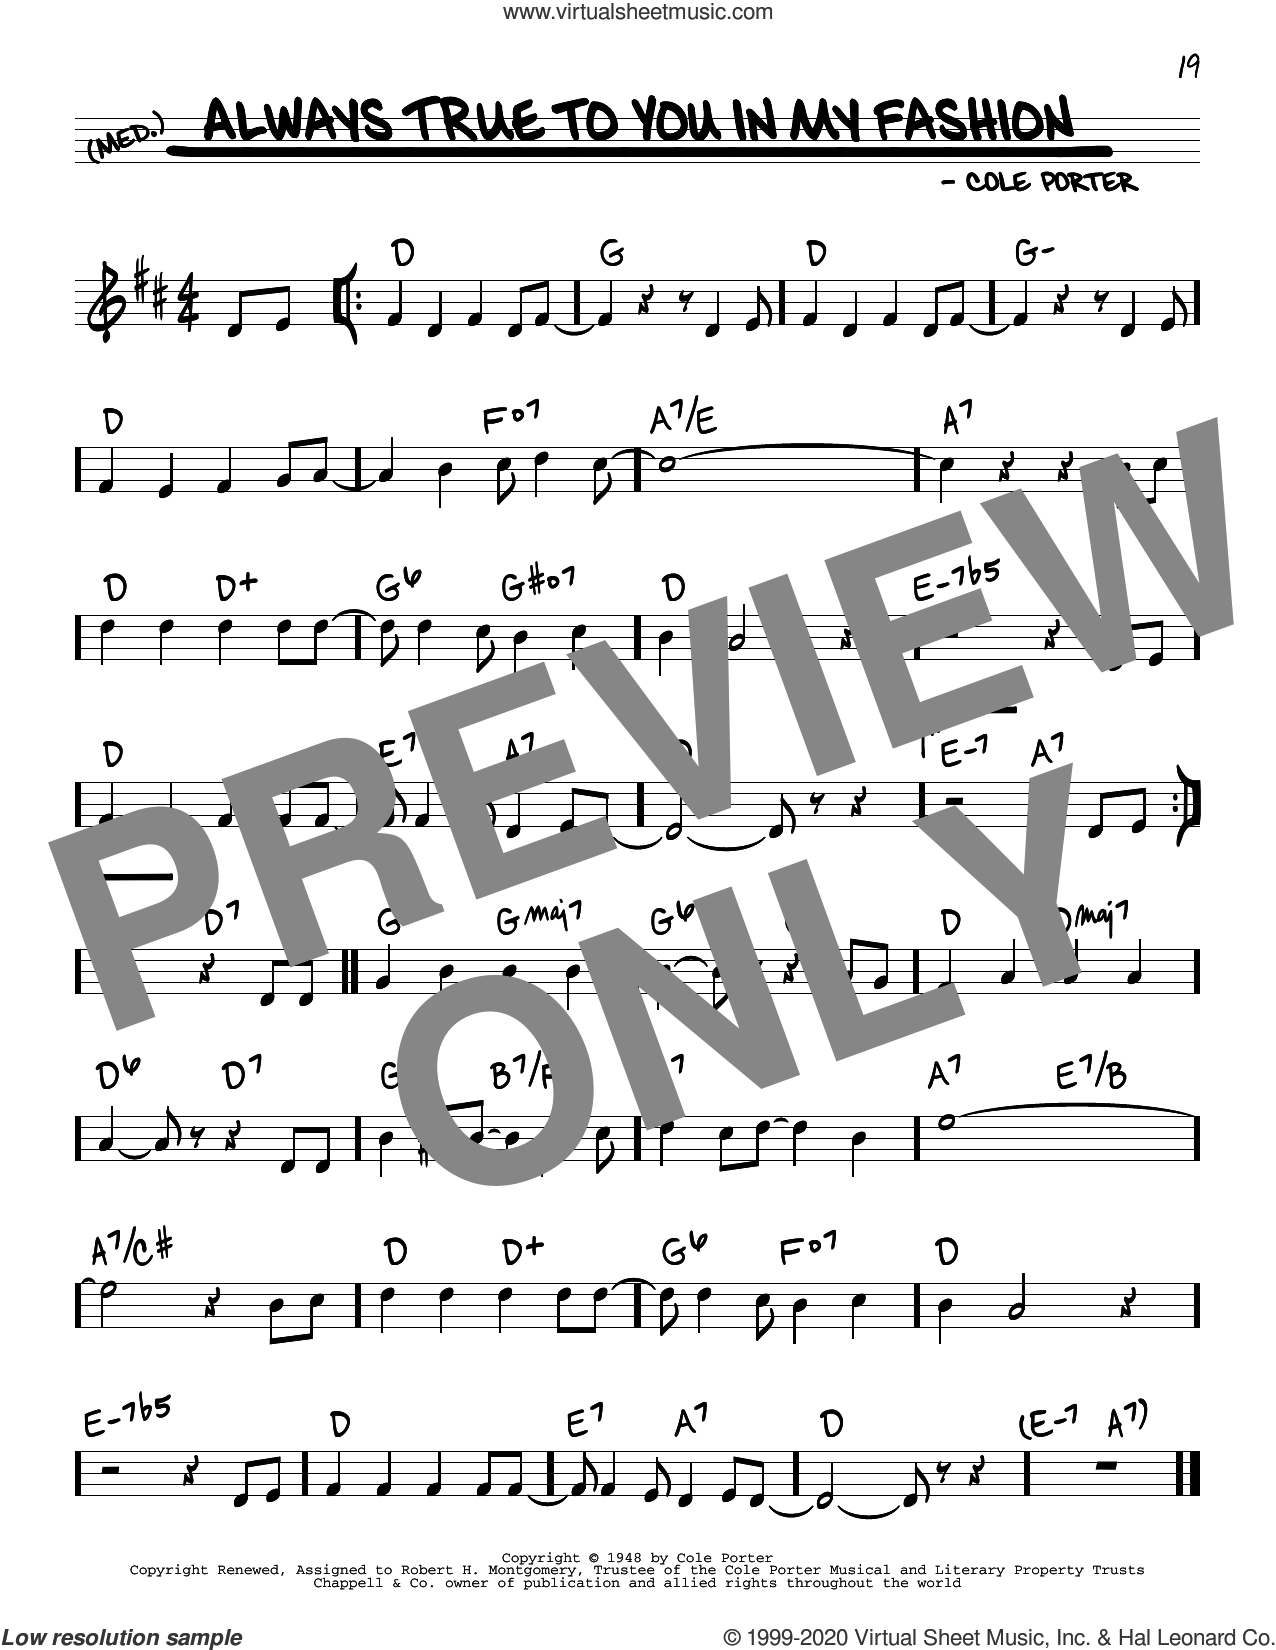 Always True To You In My Fashion sheet music for voice and other instruments (real book) by Cole Porter, Ann Miller & Tommy Rall, Jane Harvey and Jo Stafford, intermediate skill level